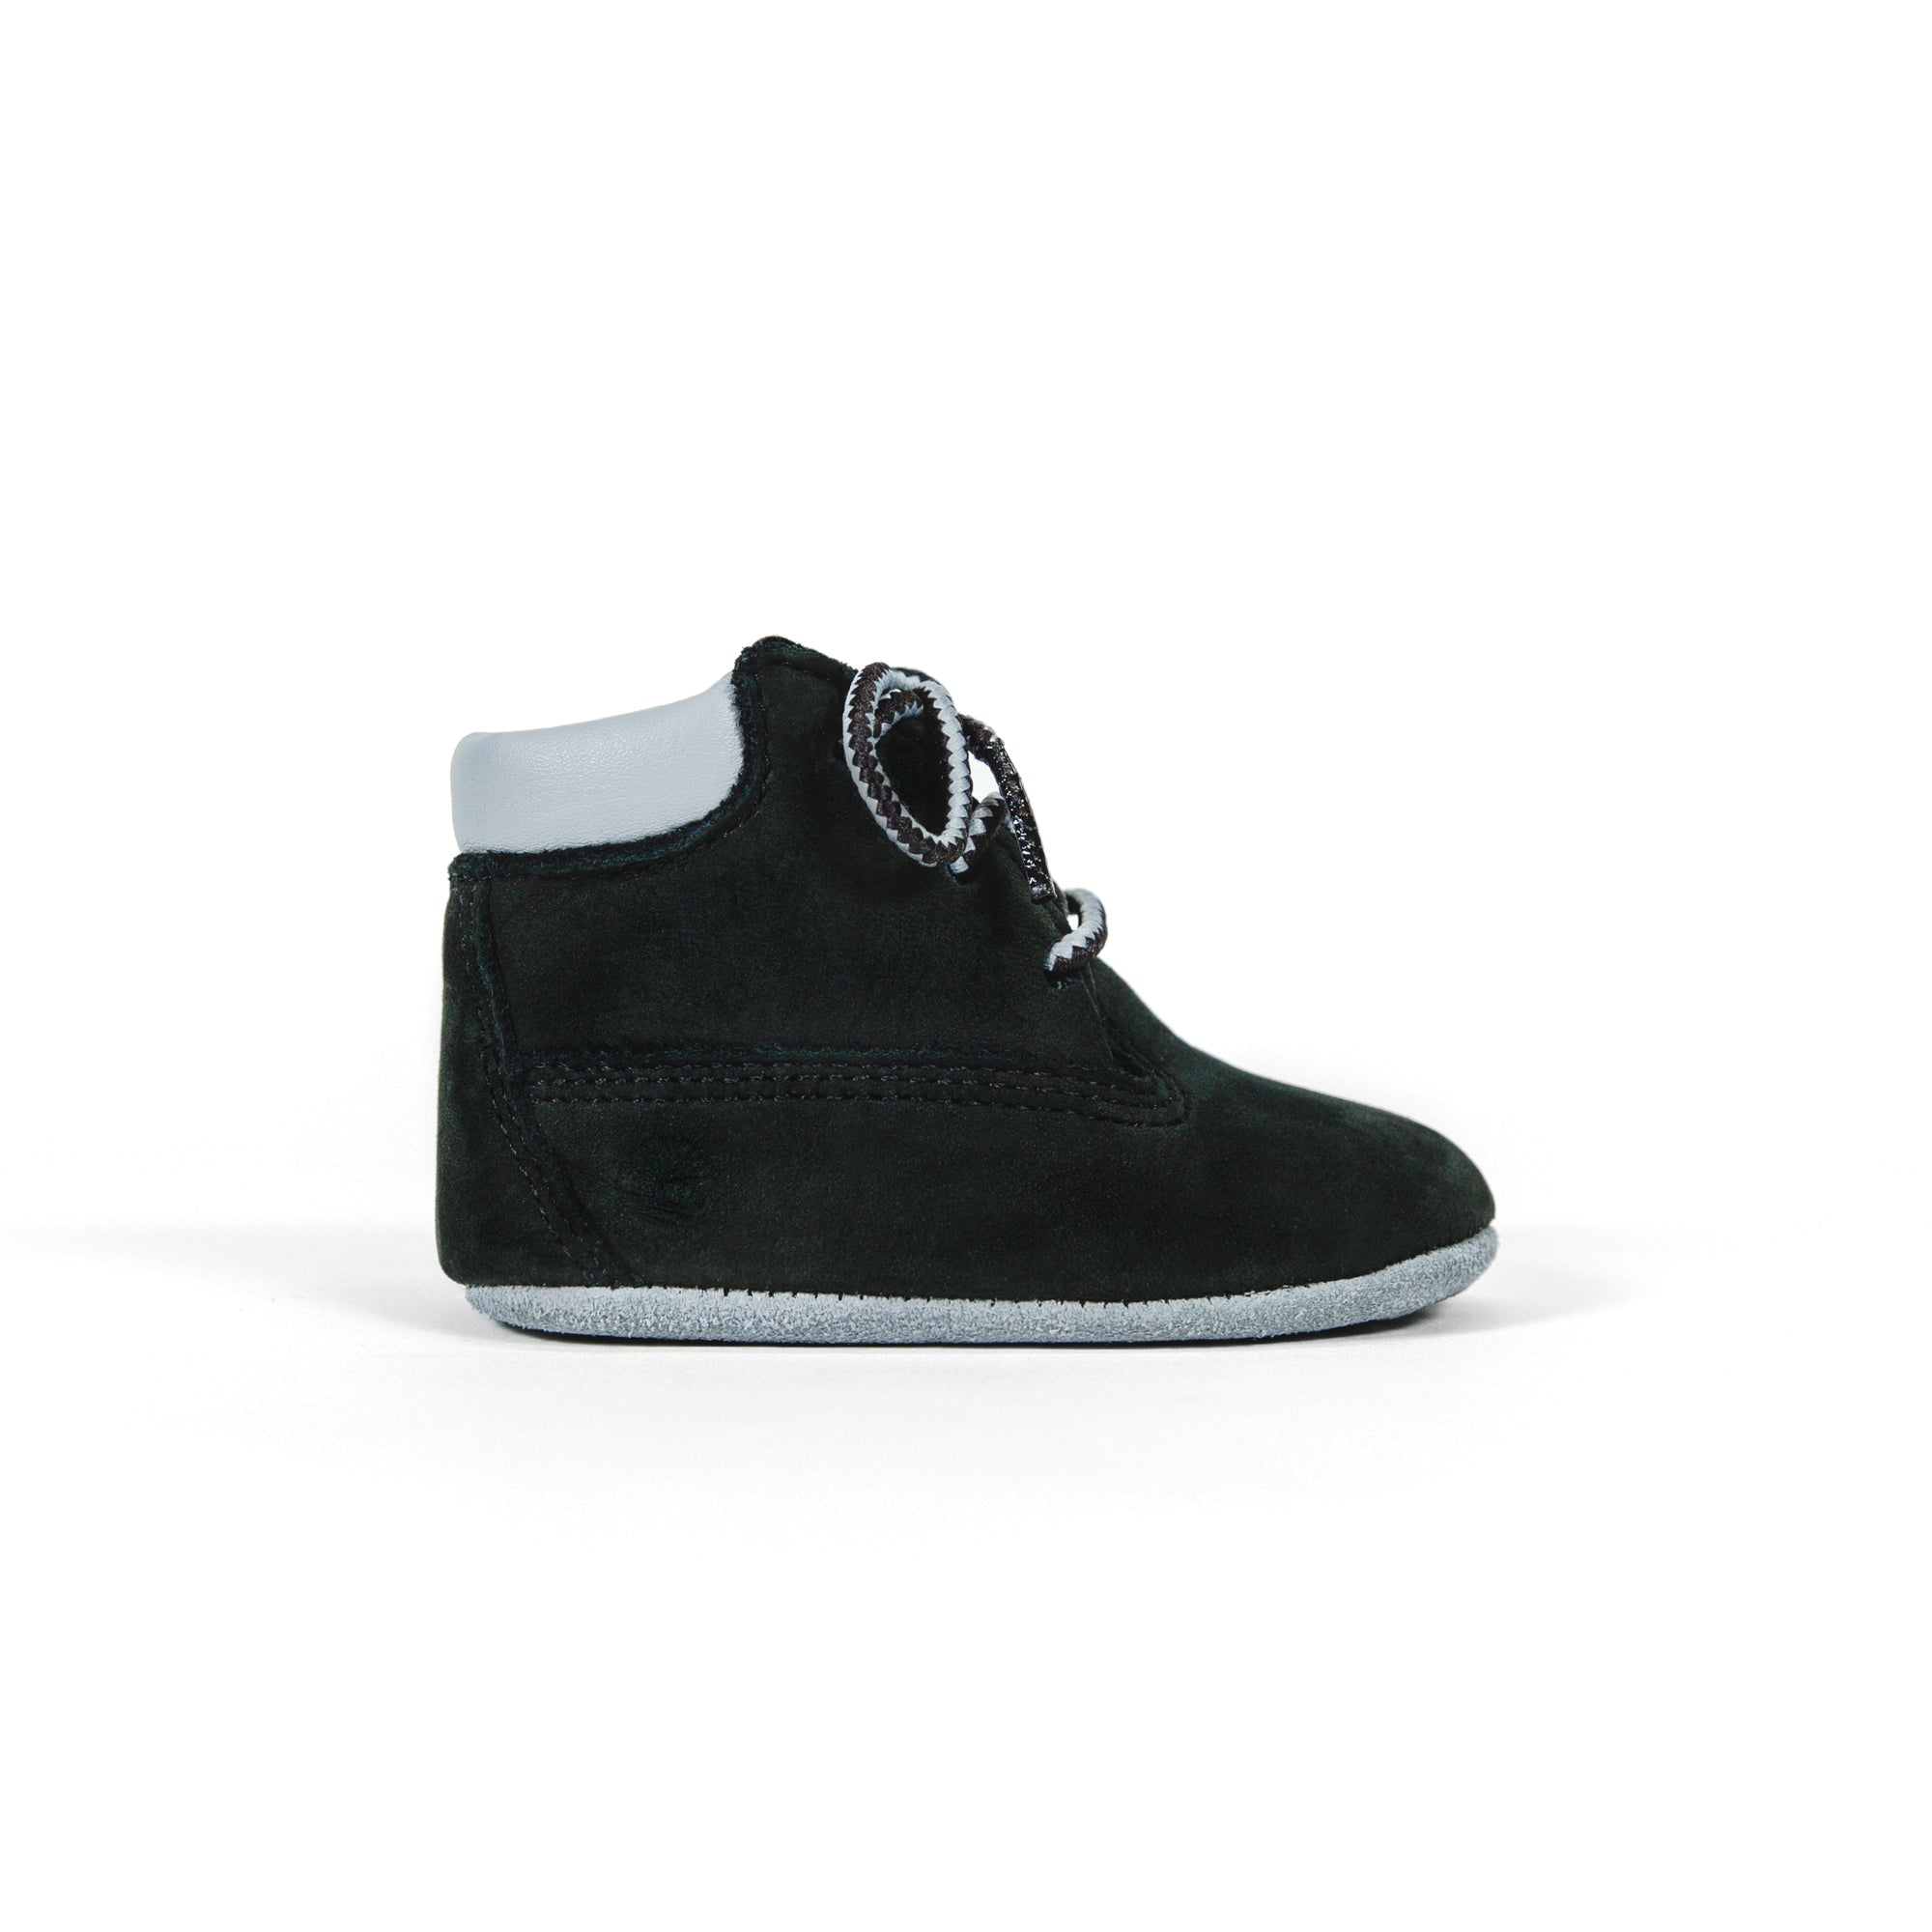 Timberland Crib Bootie with Hat - Black